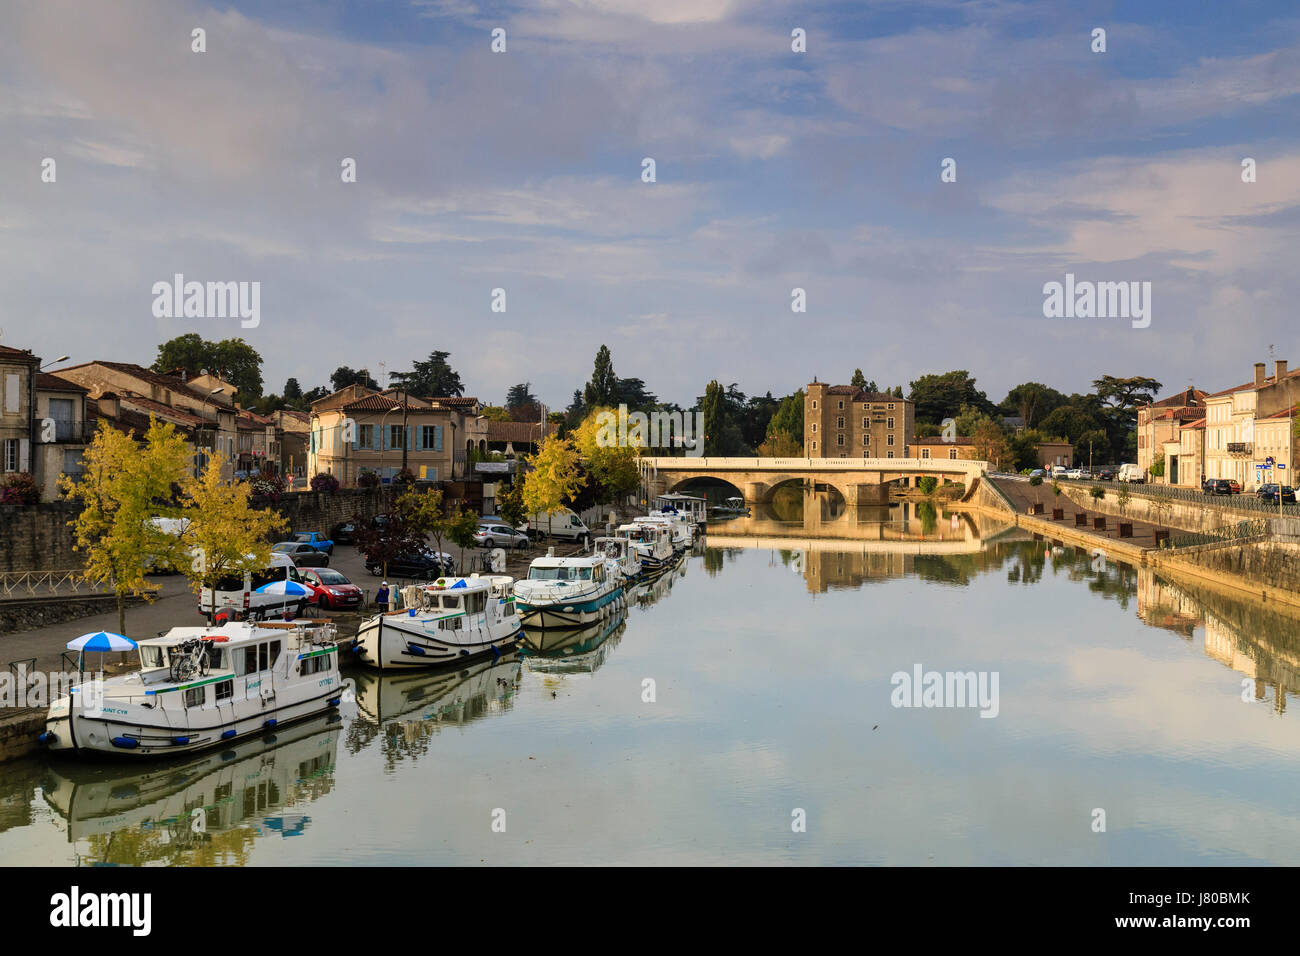 France, Gers, condom, on the way to Saint Jacques de Compostela, Condom port on the Baïse, far the Grands Moulins - Stock Image